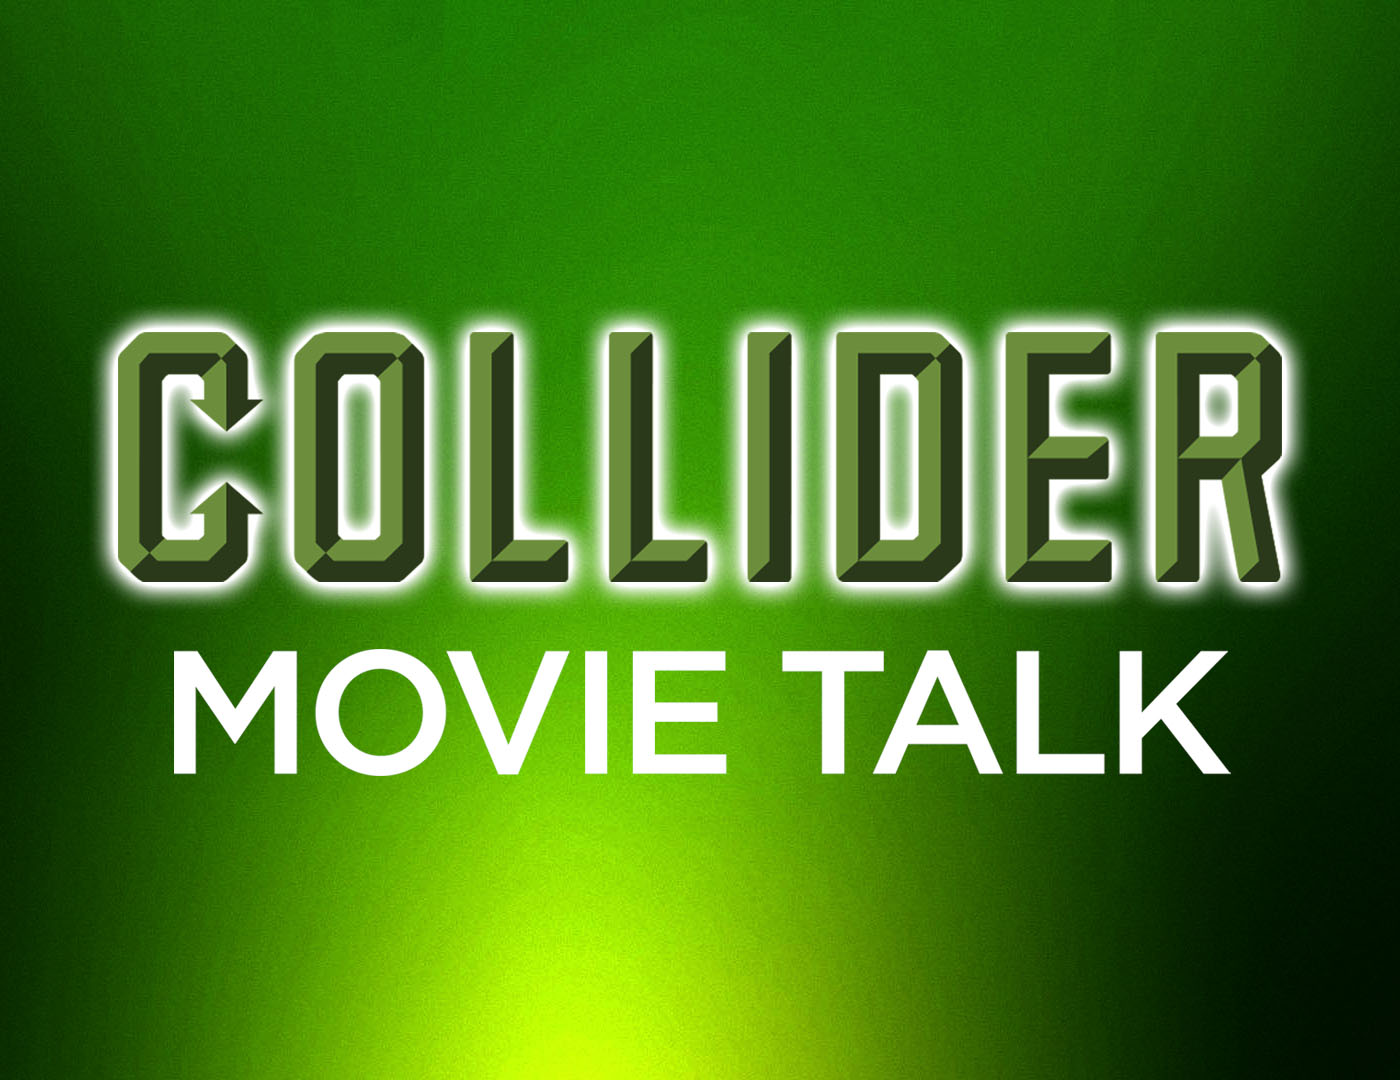 Collider Movie Talk - Wes Craven Passes Away At 76